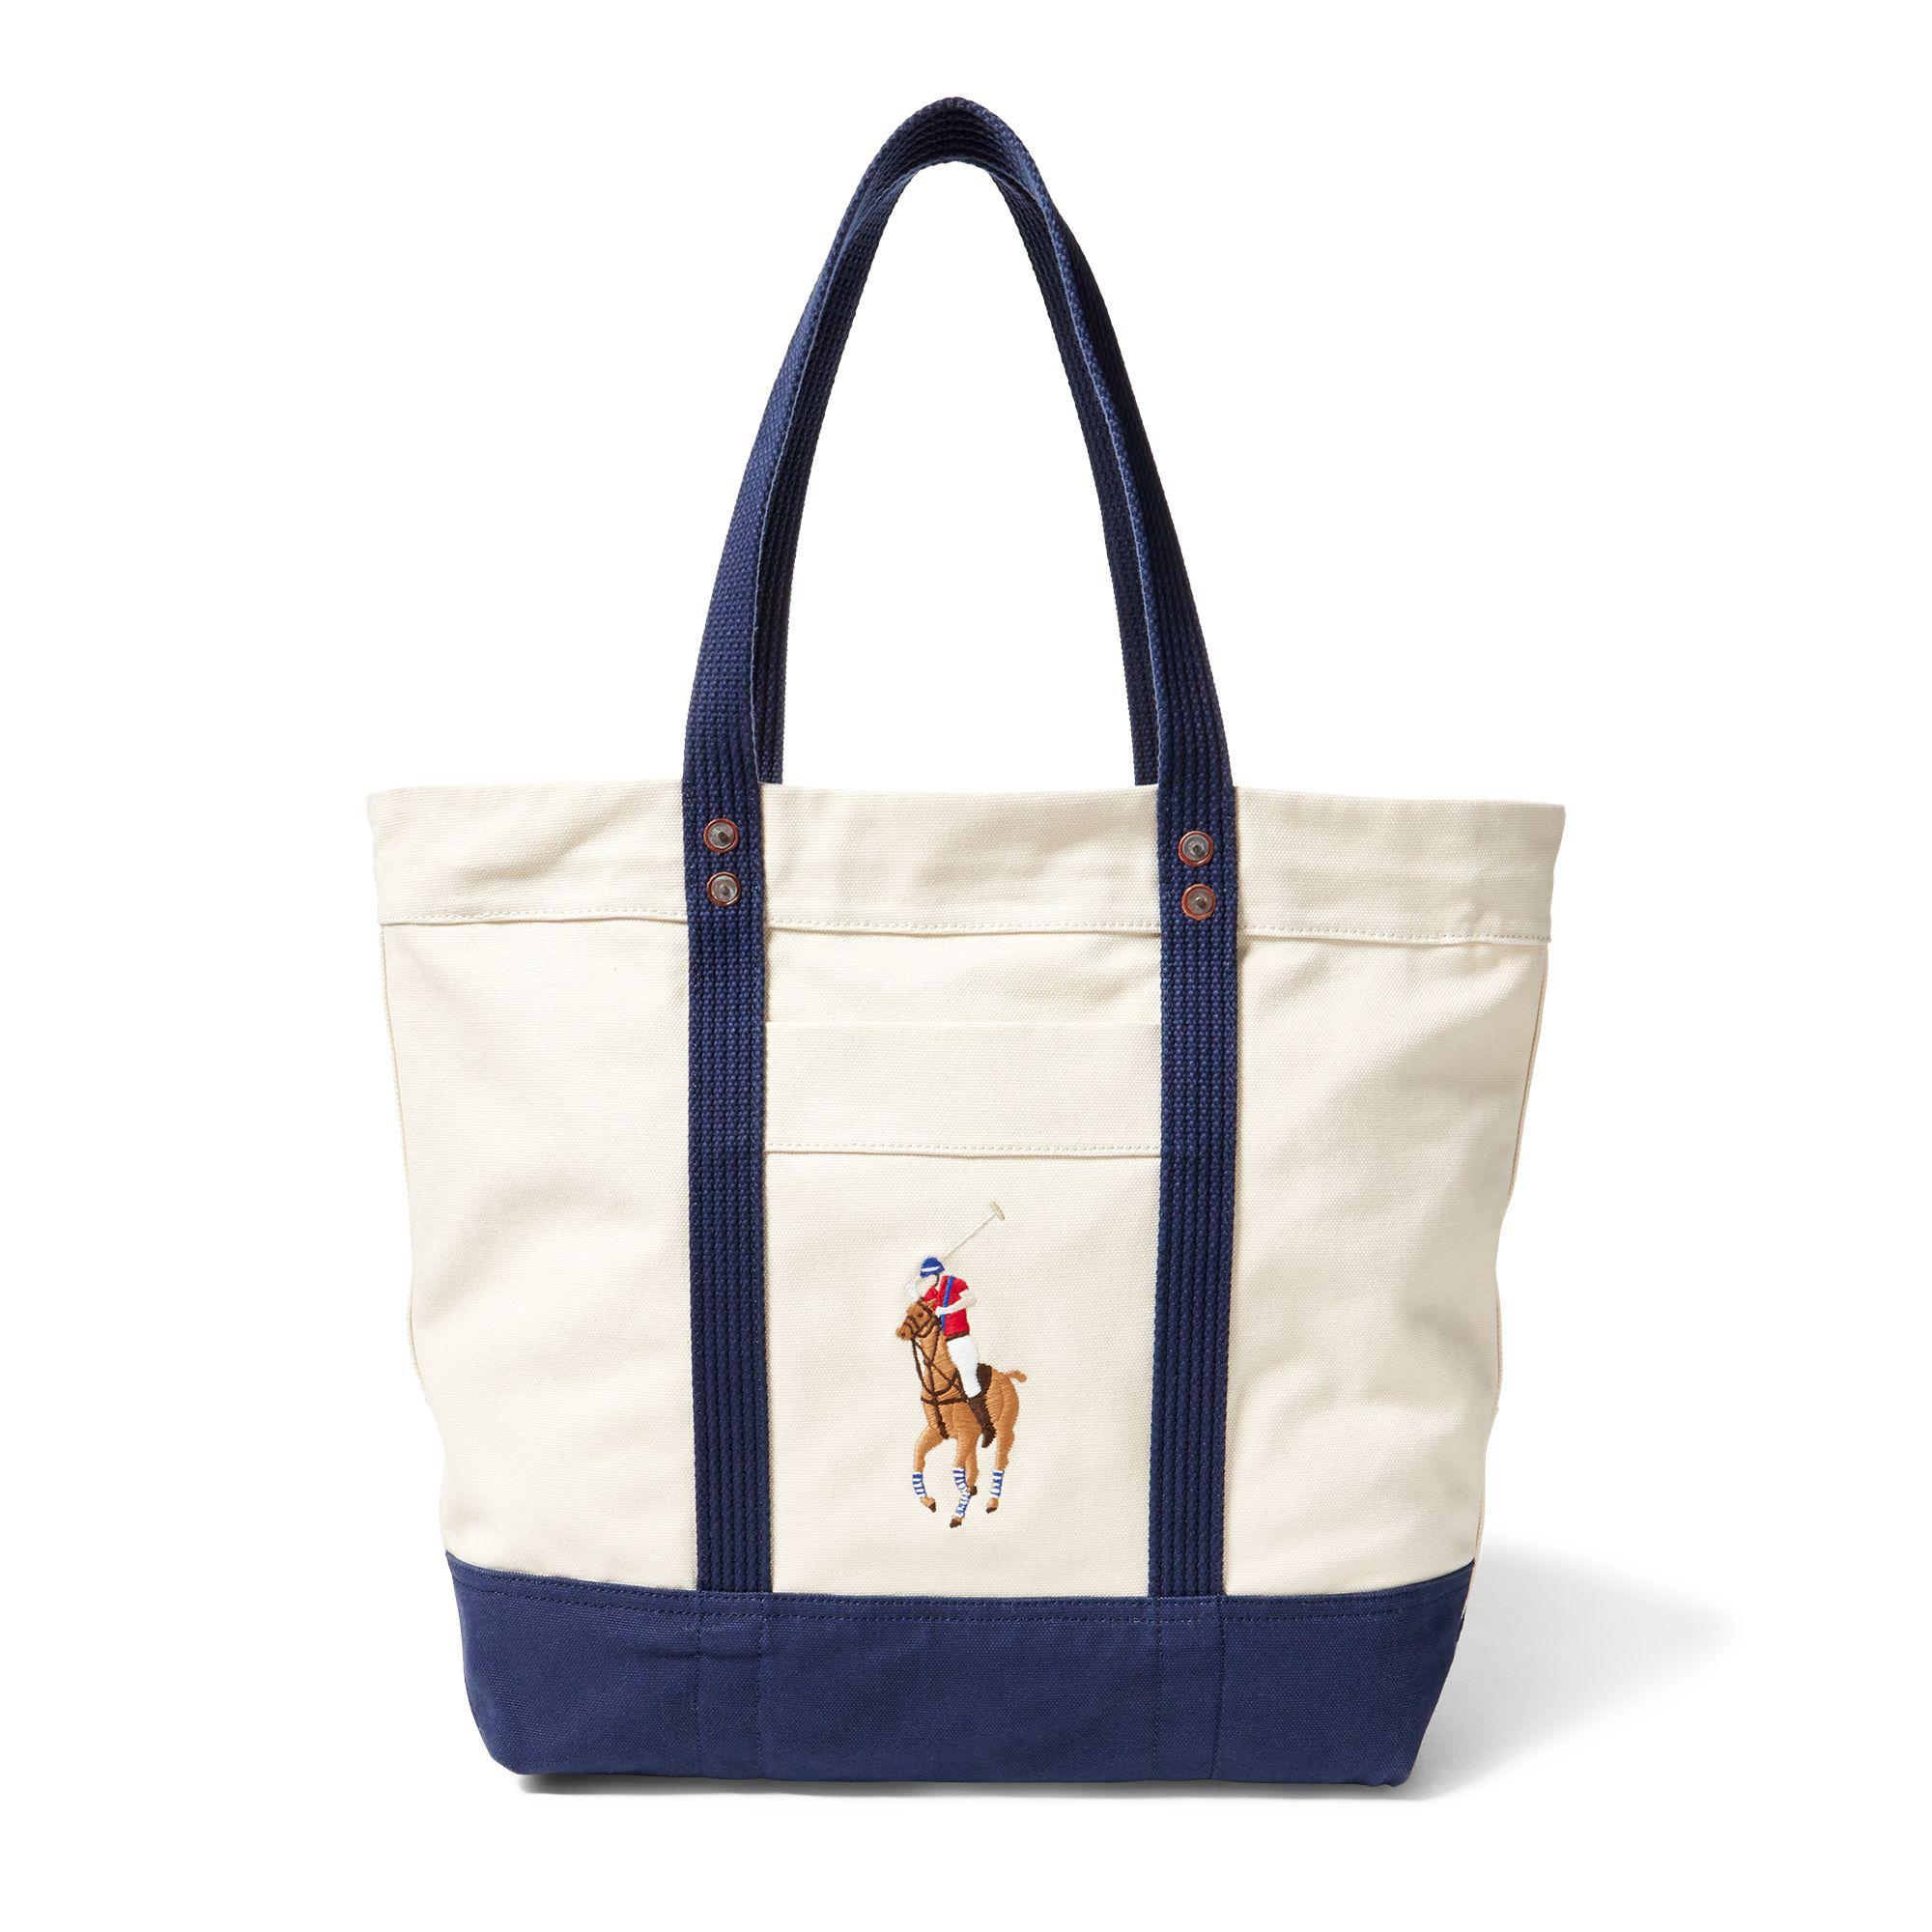 87c79ccfee92 Lyst - Polo Ralph Lauren Canvas Big Pony Tote in Blue for Men